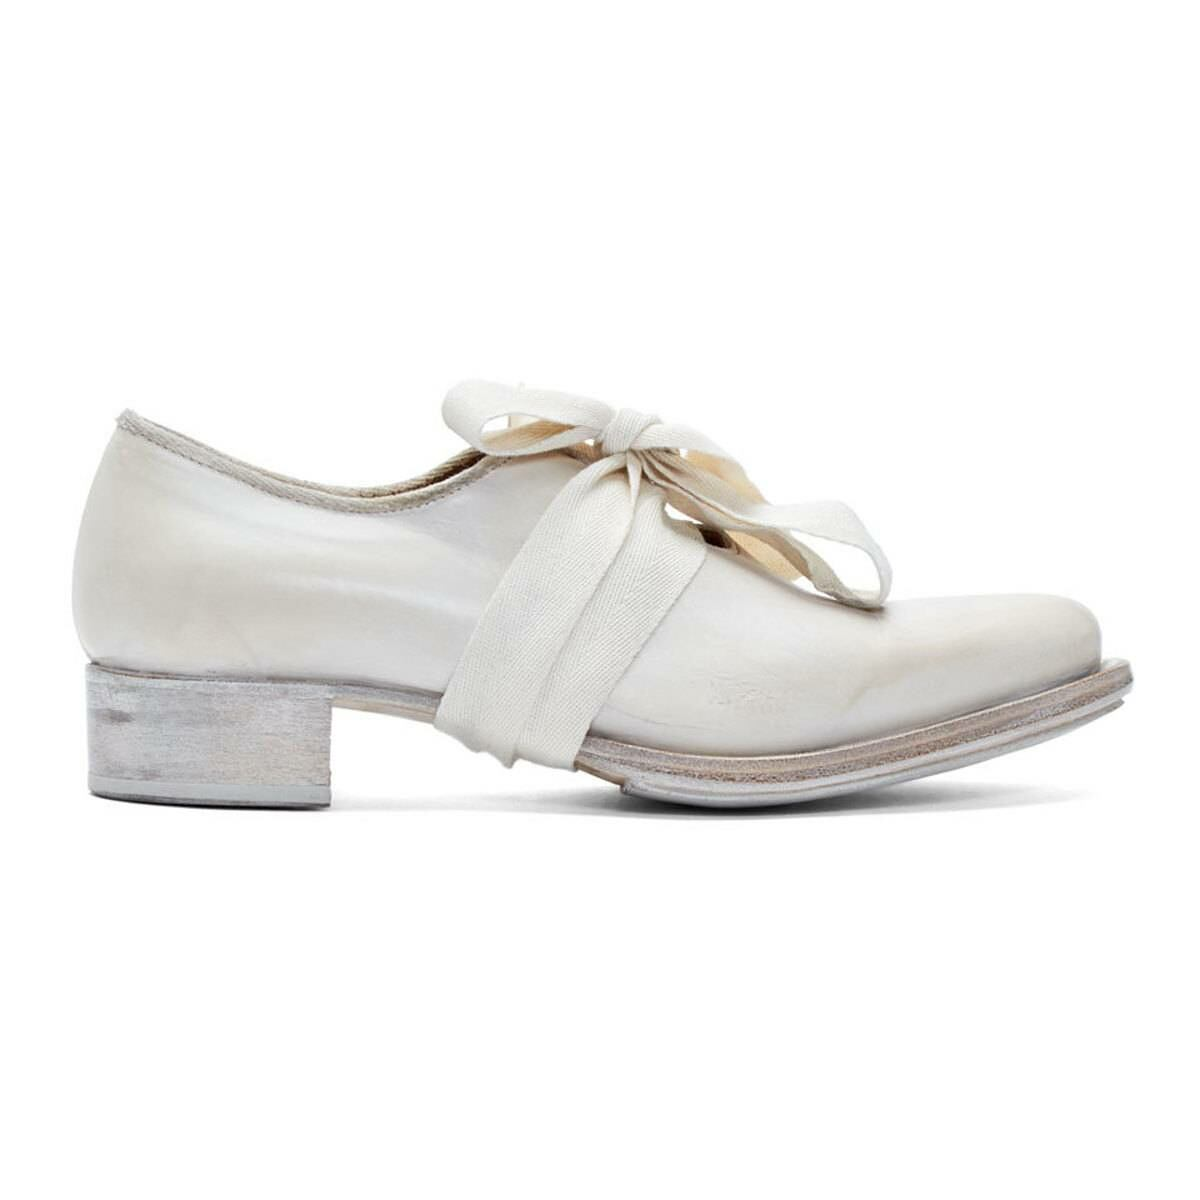 Cherevichkiotvichki White Pointy Bow Derbys Ssense USA WOMEN Women SHOES Womens LEATHER SHOES